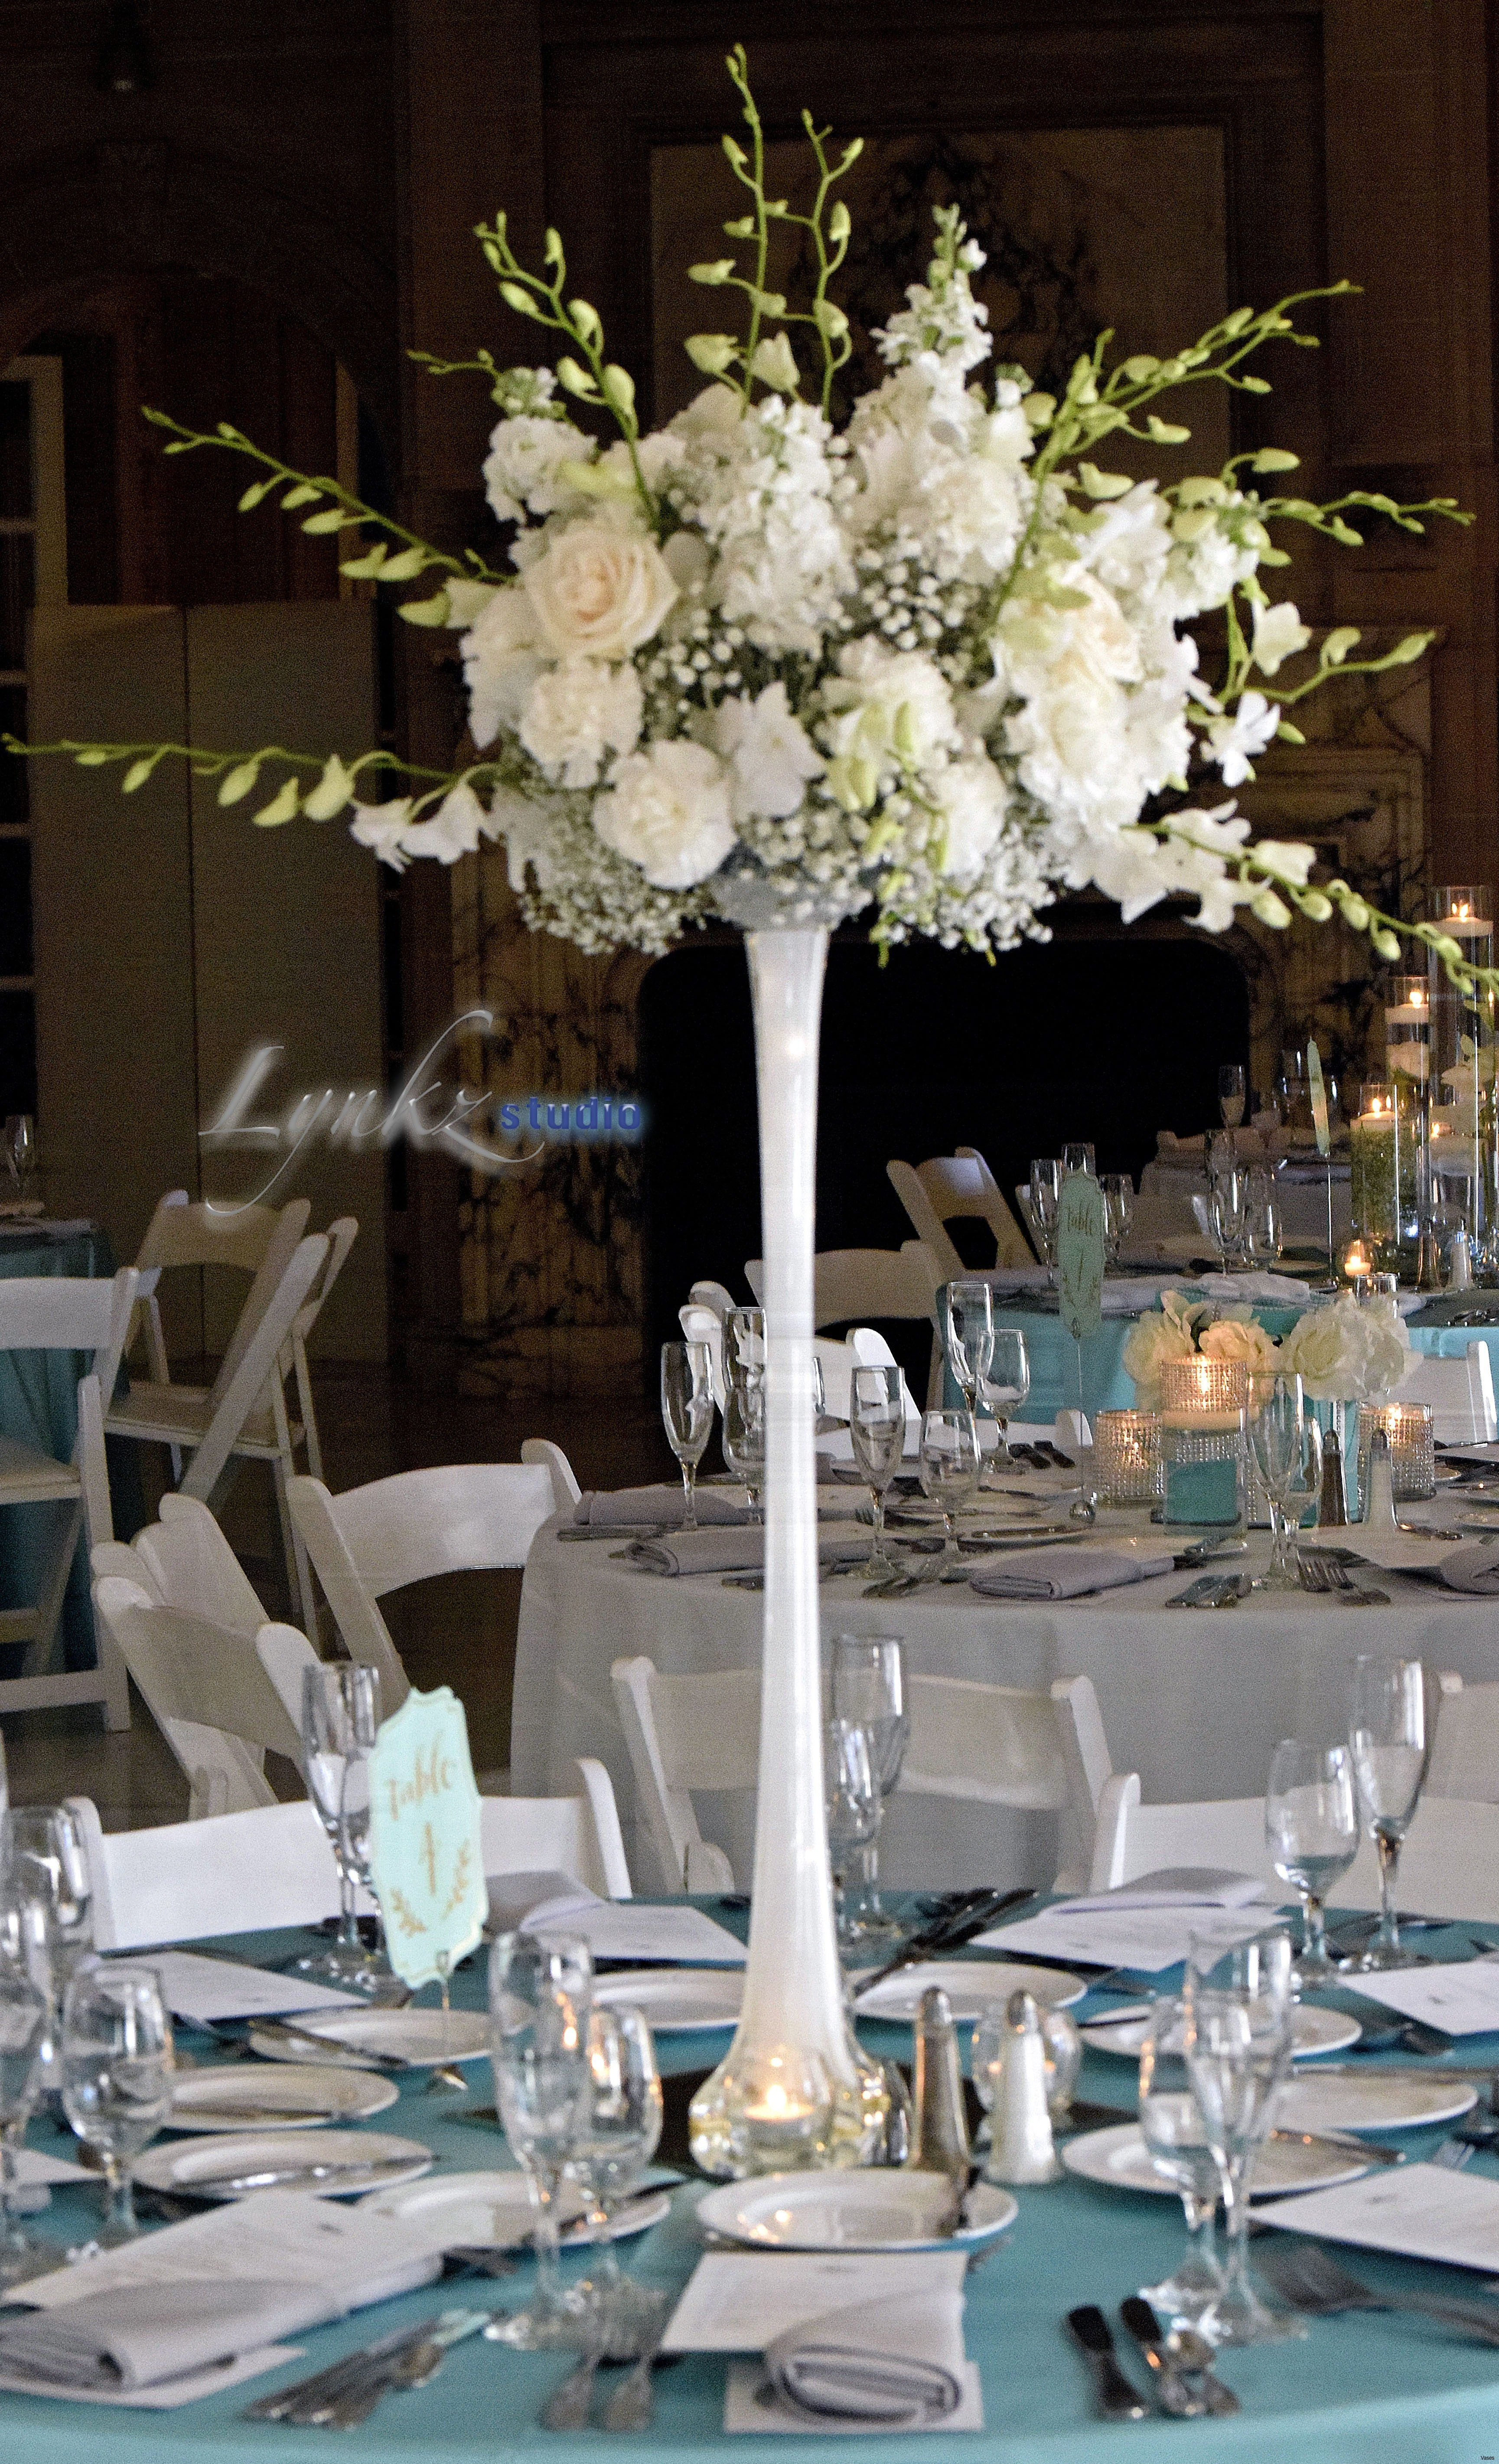 Wedding Decor Rentals Utah Inspirational 25 Attractive Rent Vases